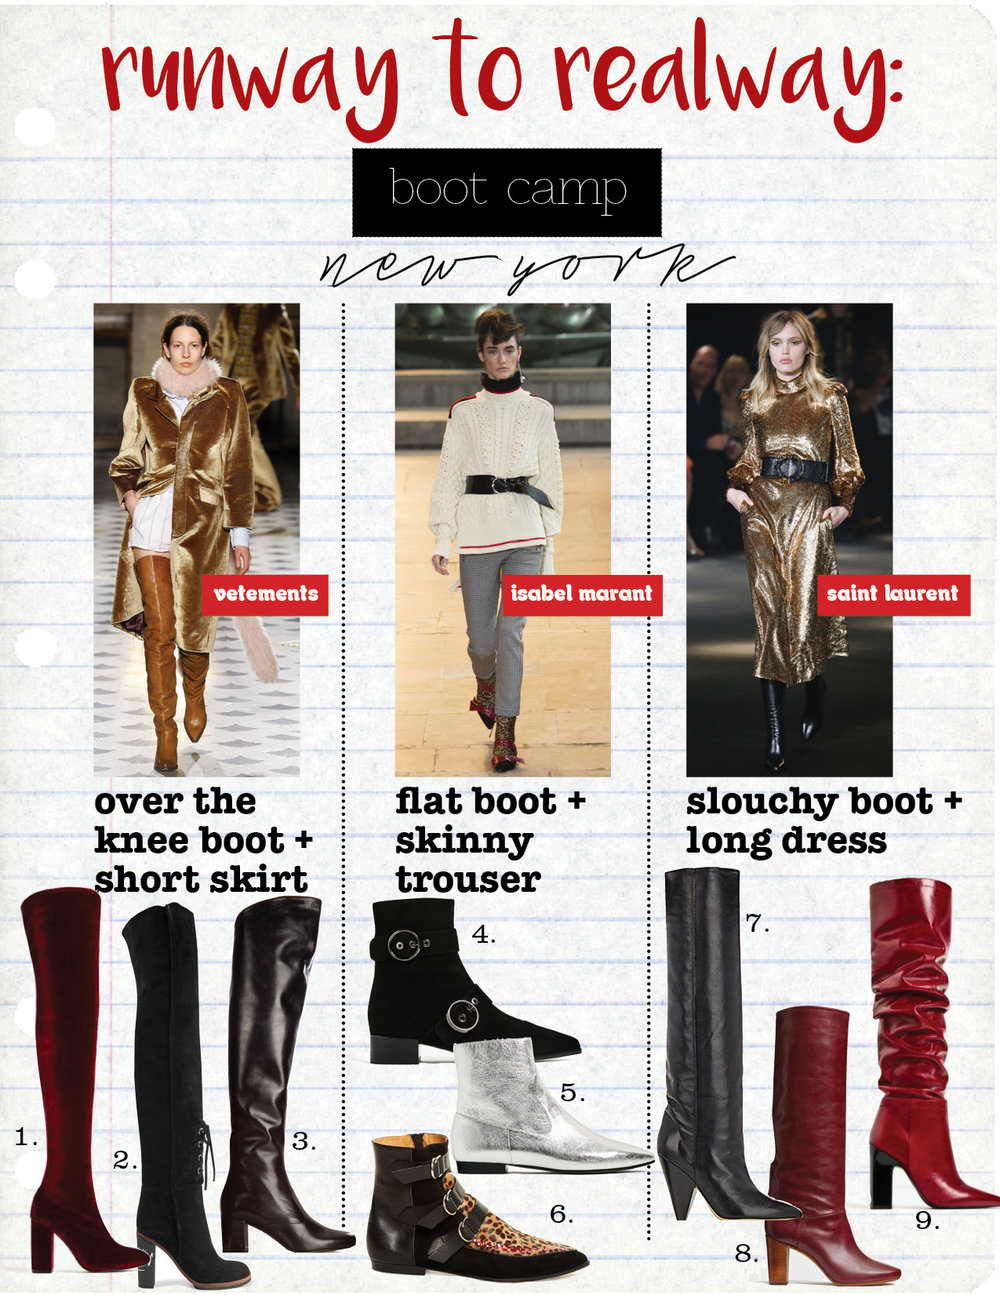 1. ZARA VELVET OVER THE KNEE HIGH HEEL BOOTS, $119,  ZARA.COM  2. PROENZA SCHOULER SUEDE OVER THE KNEE BOOTS, $1450,  NET-A-PORTER.COM  3. SAINT LAURENT BABIES OVER THE KNEE LEATHER BOOTS, $1595,  MATCHESFASHION.COM  4. ZARA POINTED LEATHER BUCKLED ANKLE BOOTS, $139,  ZARA.COM  5. ZARA LAMINATED LEATHER ANKLE BOOTS, $89,  ZARA.COM  6. ISABEL MARANT ROWI CALF-HAIR, LEATHER AND SUEDE ANKLE BOOTS, $748,  MATCHESFASHION.COM  7. ISABEL MARANT LAITH KNEE BOOTS, $1255,  BARNEYS.COM  8. CELINE HERITAGE BOOT IN BURGUNDY SHINY CALFSKIN, $1166,  CELINE.COM  9. ZARA LEATHER HIGH HEEL BOOTS, $239,  ZARA.COM